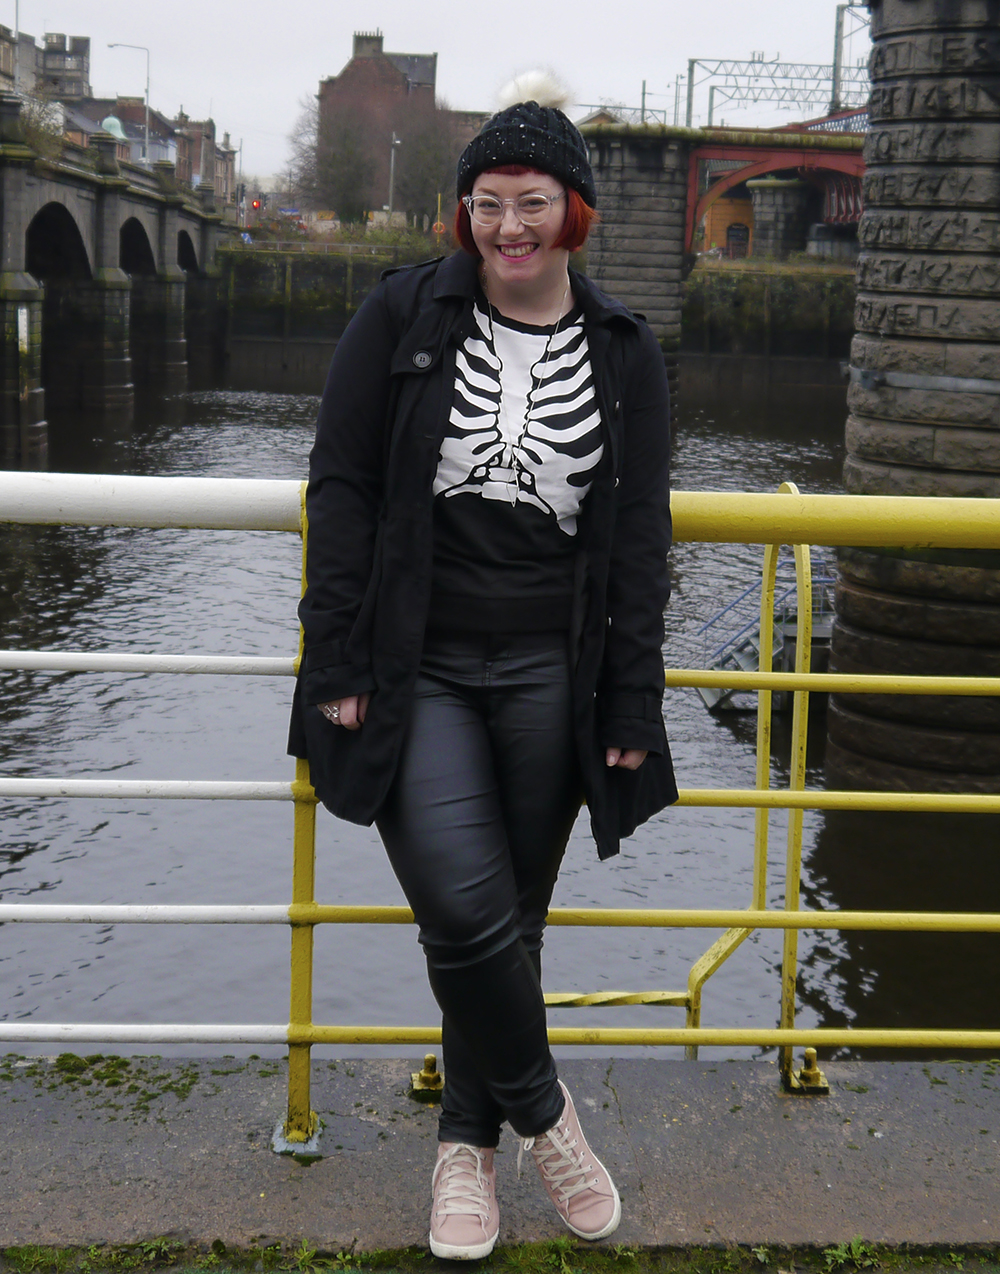 Styled by, Wardrobe Conversations, Scottish blogger, Dundee blogger, Glasgow, winter blues, winter outfit, monochrome outfit, Halloween outfit, skeleton jumper, H&M skeleton jumper, bobble hat, Tiger Stores winter hat, pom pom hat, blacn and white outfit, Scottish style, IOLLA, #seewithIOLLA, geometric jewellery, silver jewellery, Sunday style, trainers, pink trainers, charity shop style, accessorize necklace, #BMM, Bloody Mary Metal, Crossbones ring